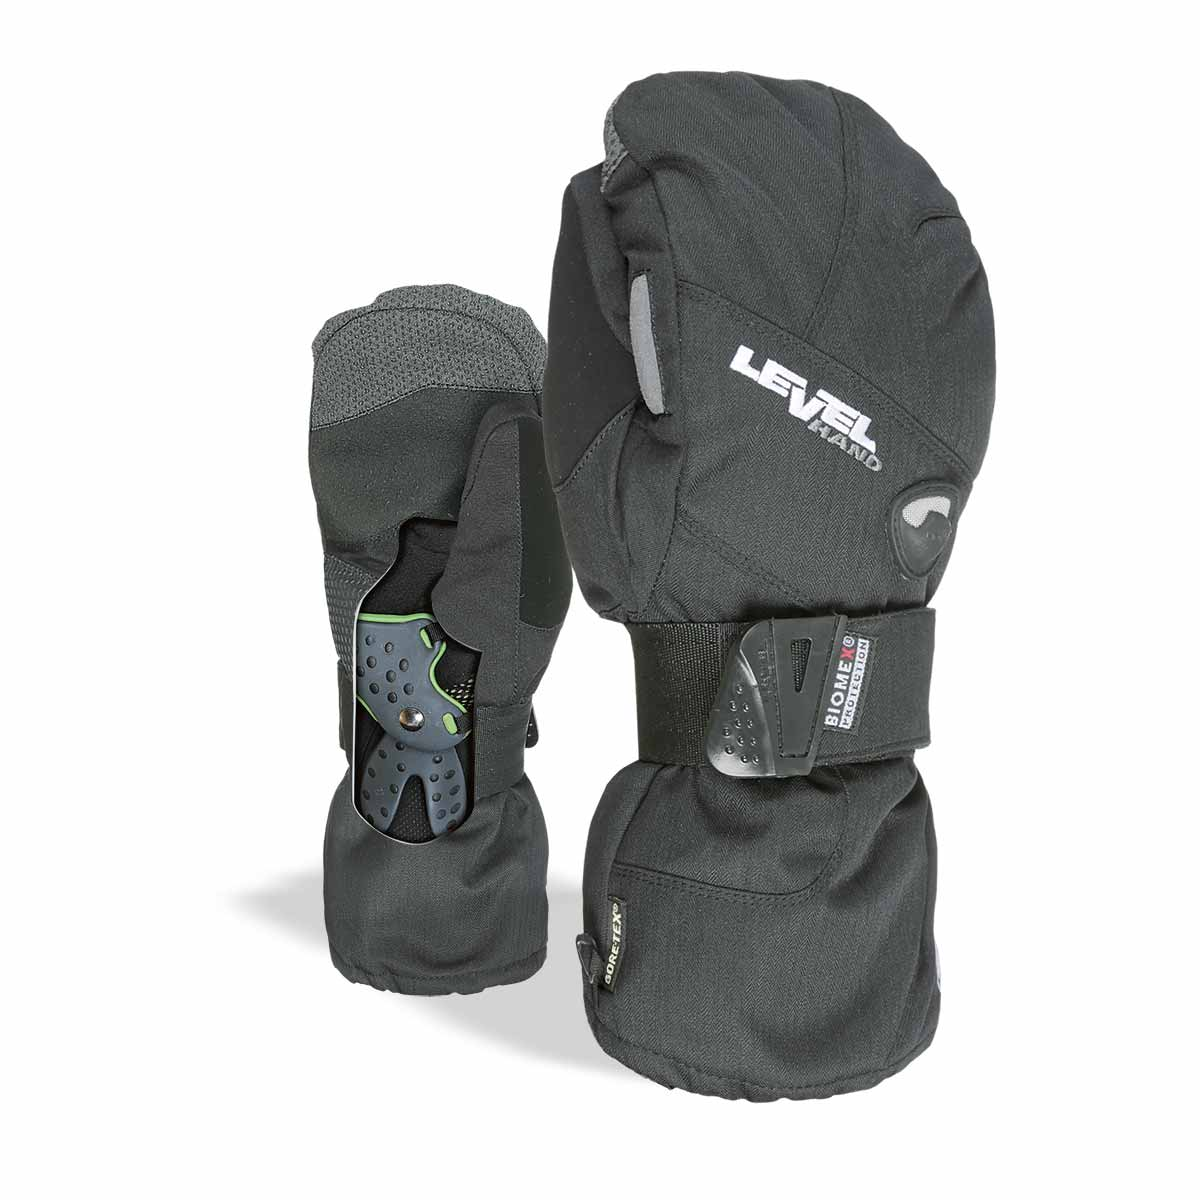 LEVEL Half Pipe GTX Snowboard Mittens with Wrist Guards - Black